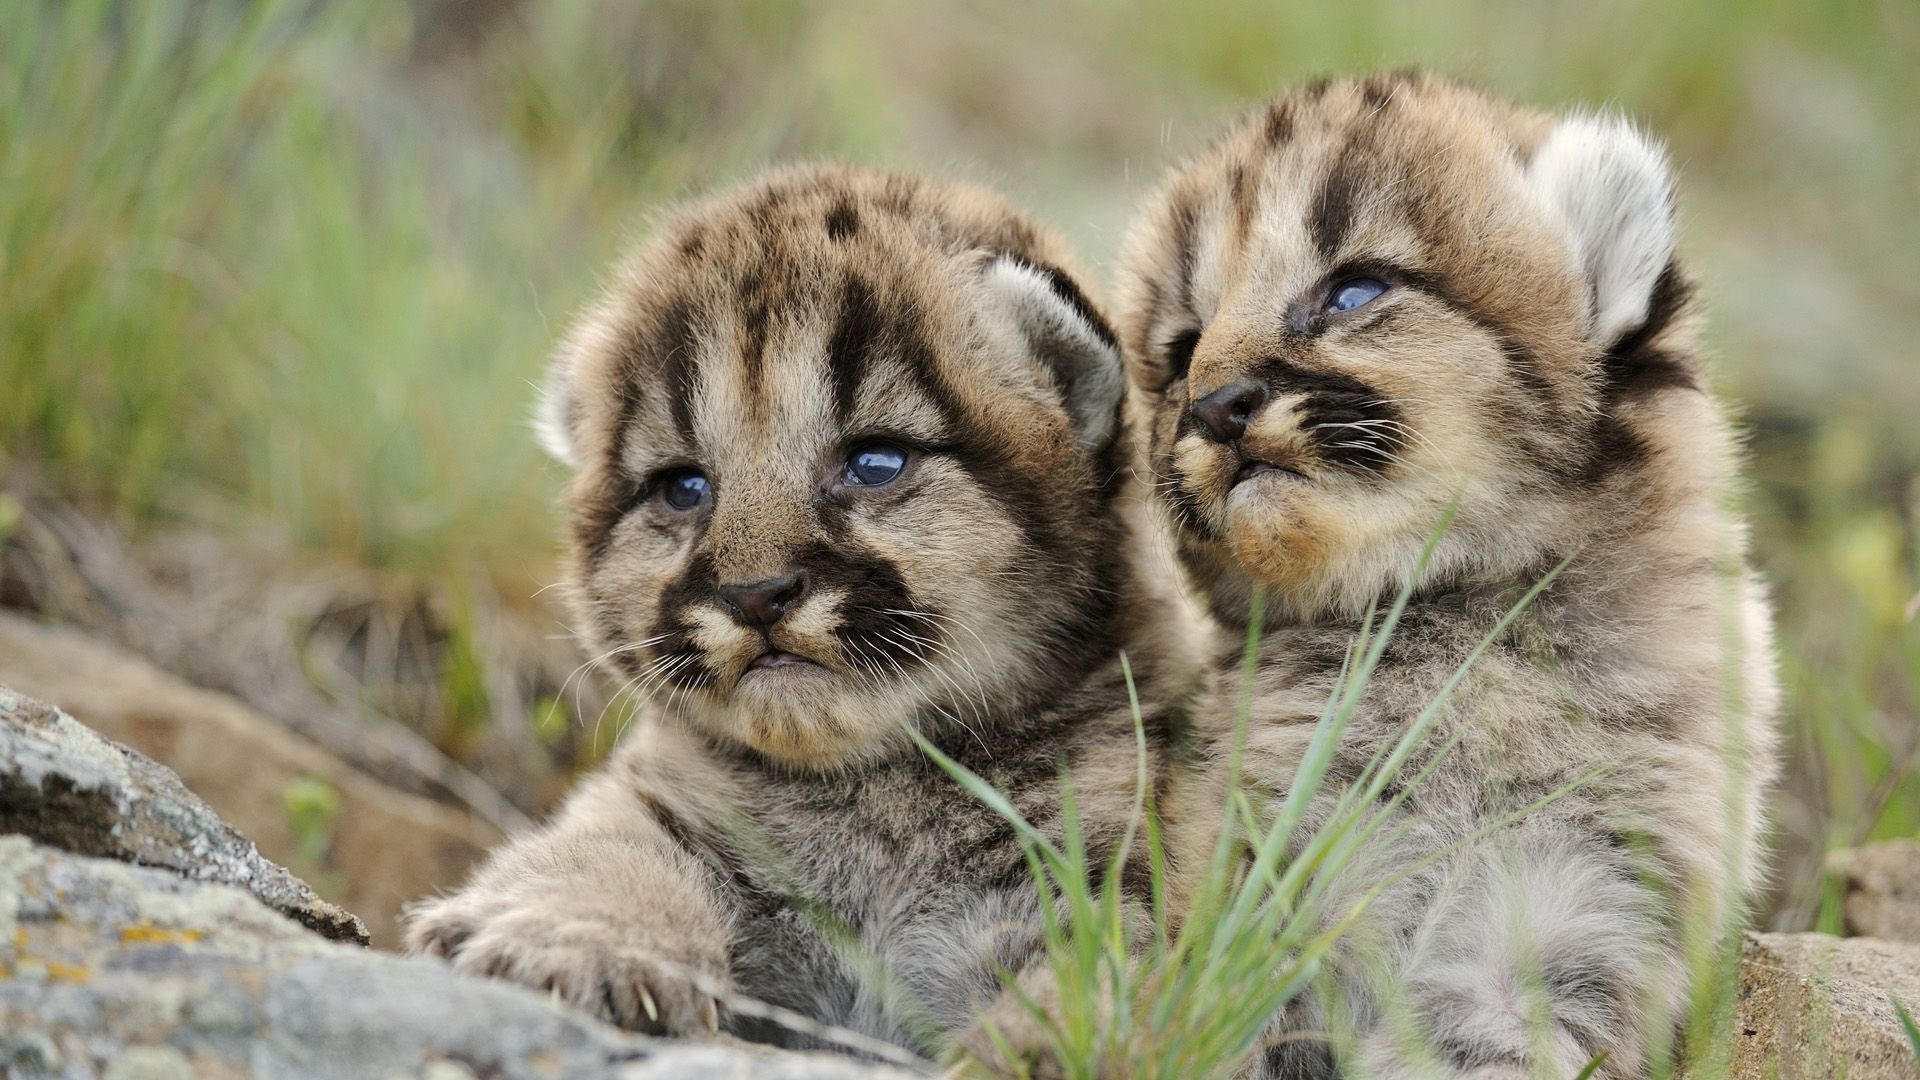 Cute Animal Hd Wallpapers Hd Wallpapers Inn Cute Animal Pictures Animals Beautiful Cute Baby Animals